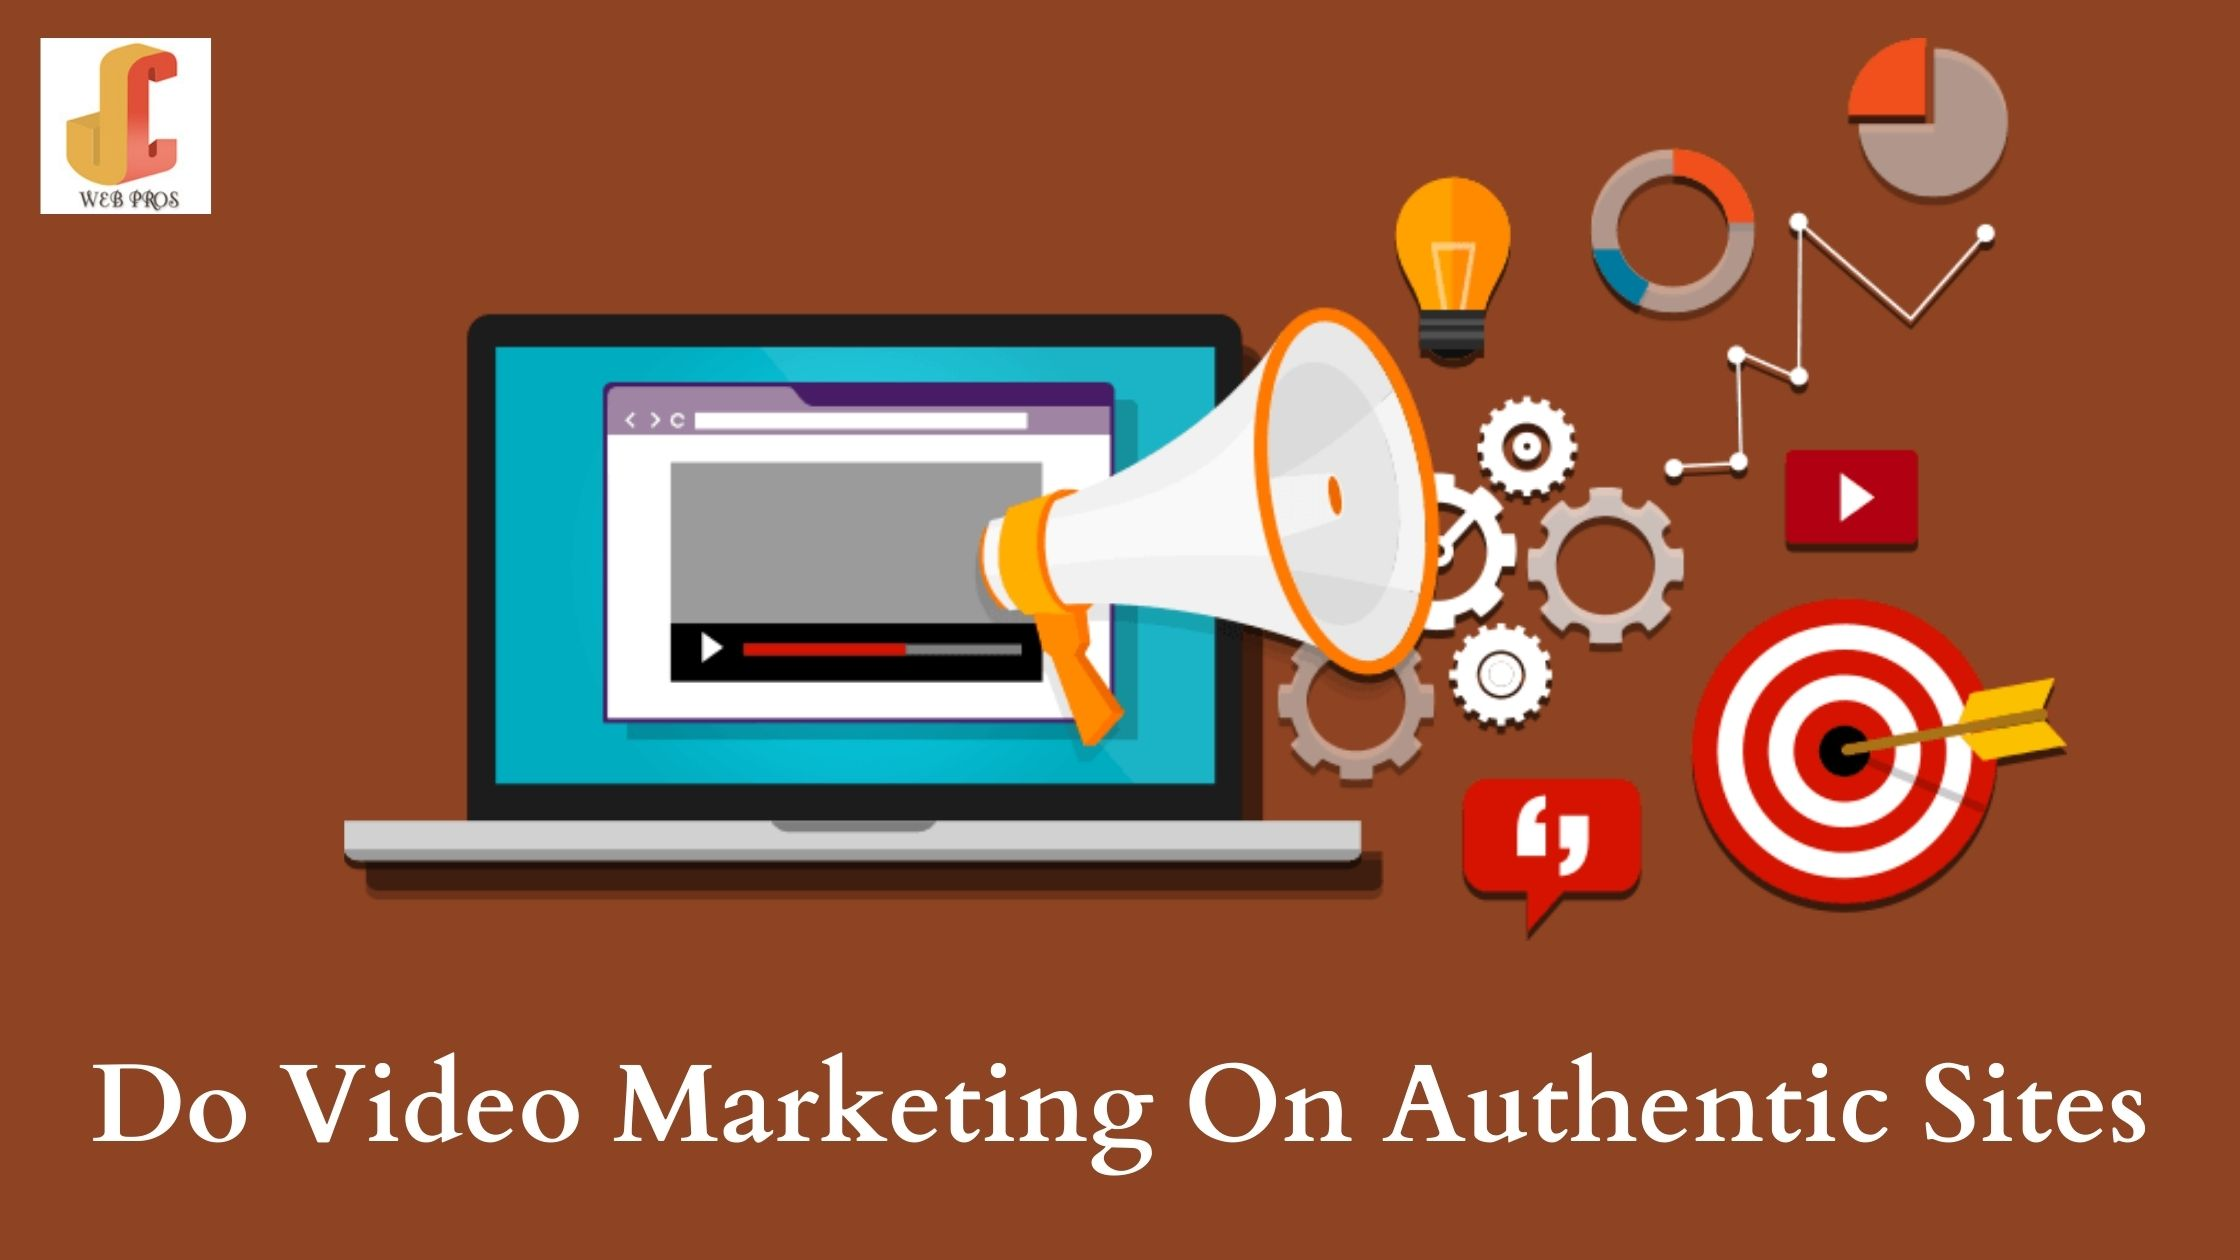 Do Video Marketing On Authentic Sites